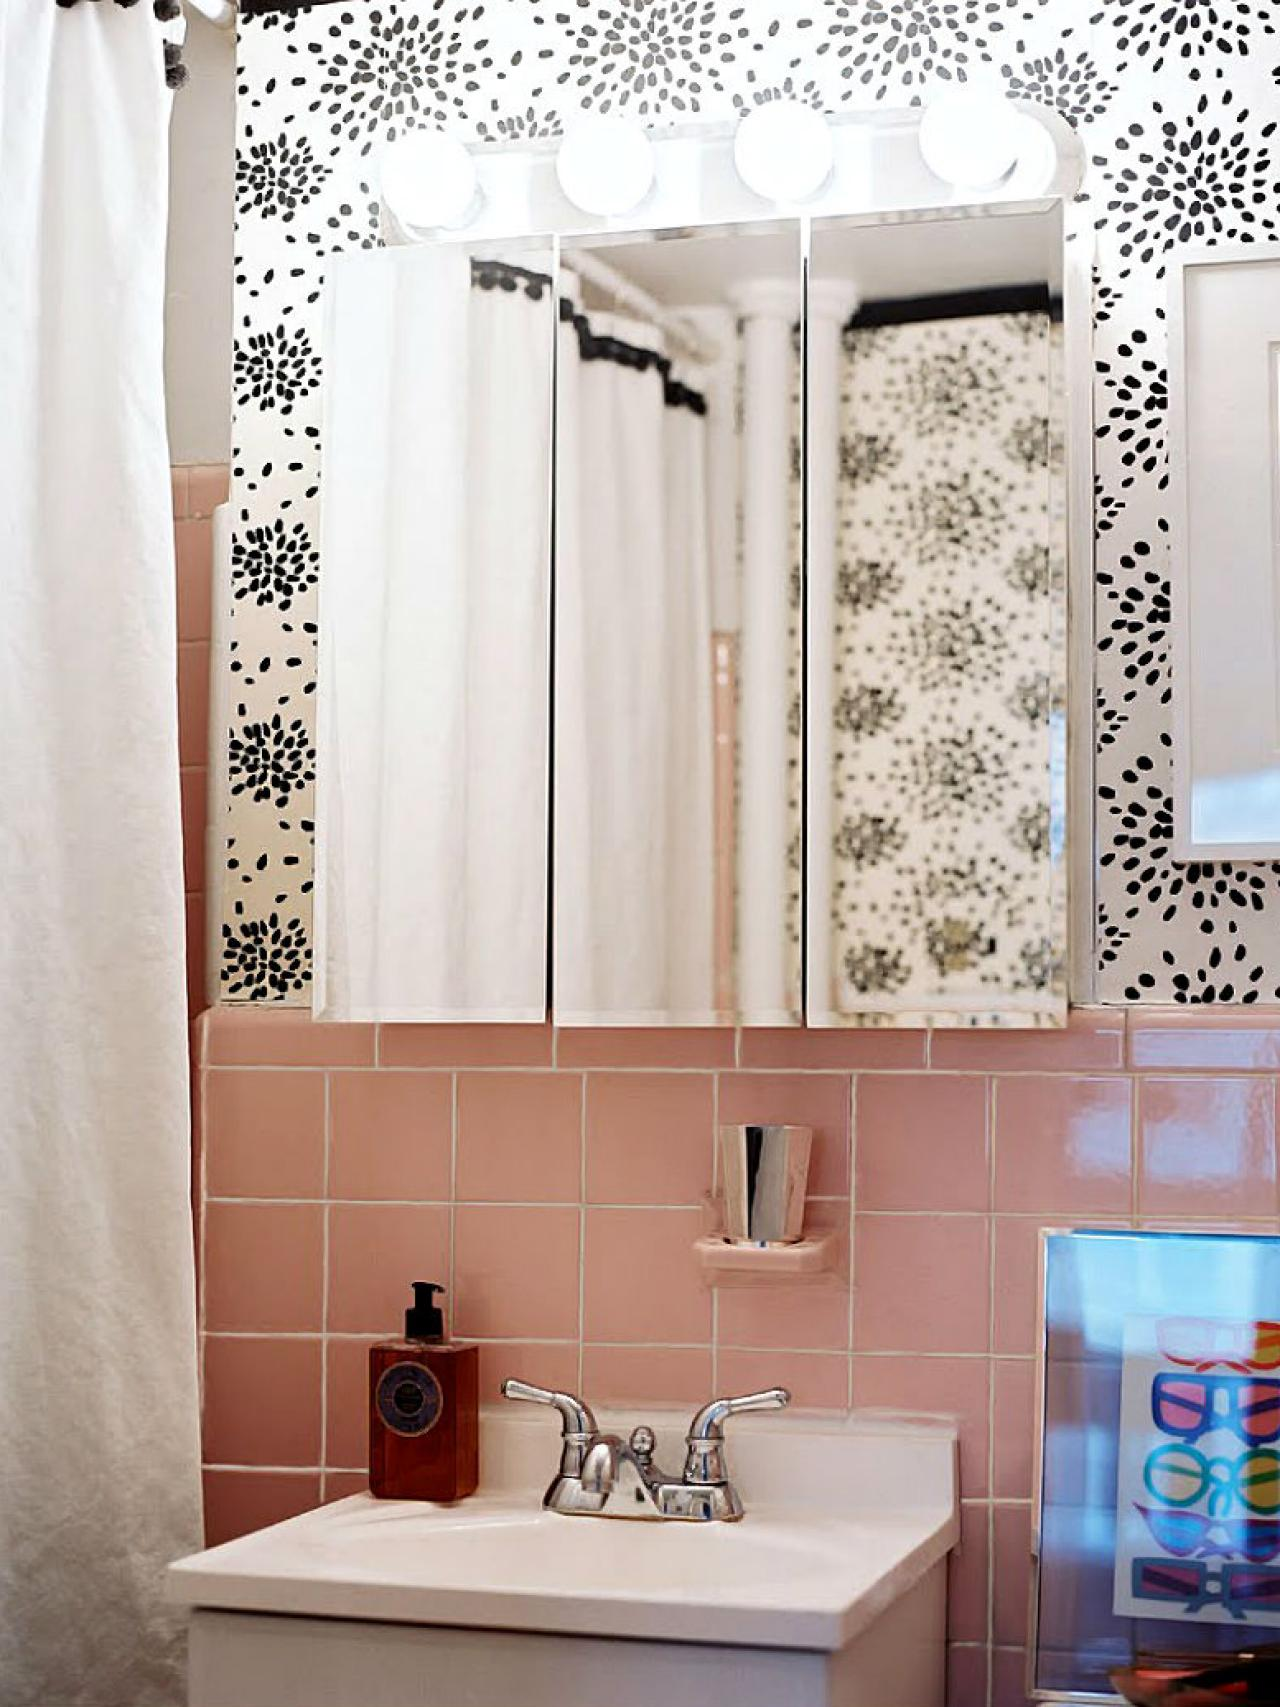 Reasons to love retro pink tiled bathrooms hgtv 39 s for Outdated bathroom ideas